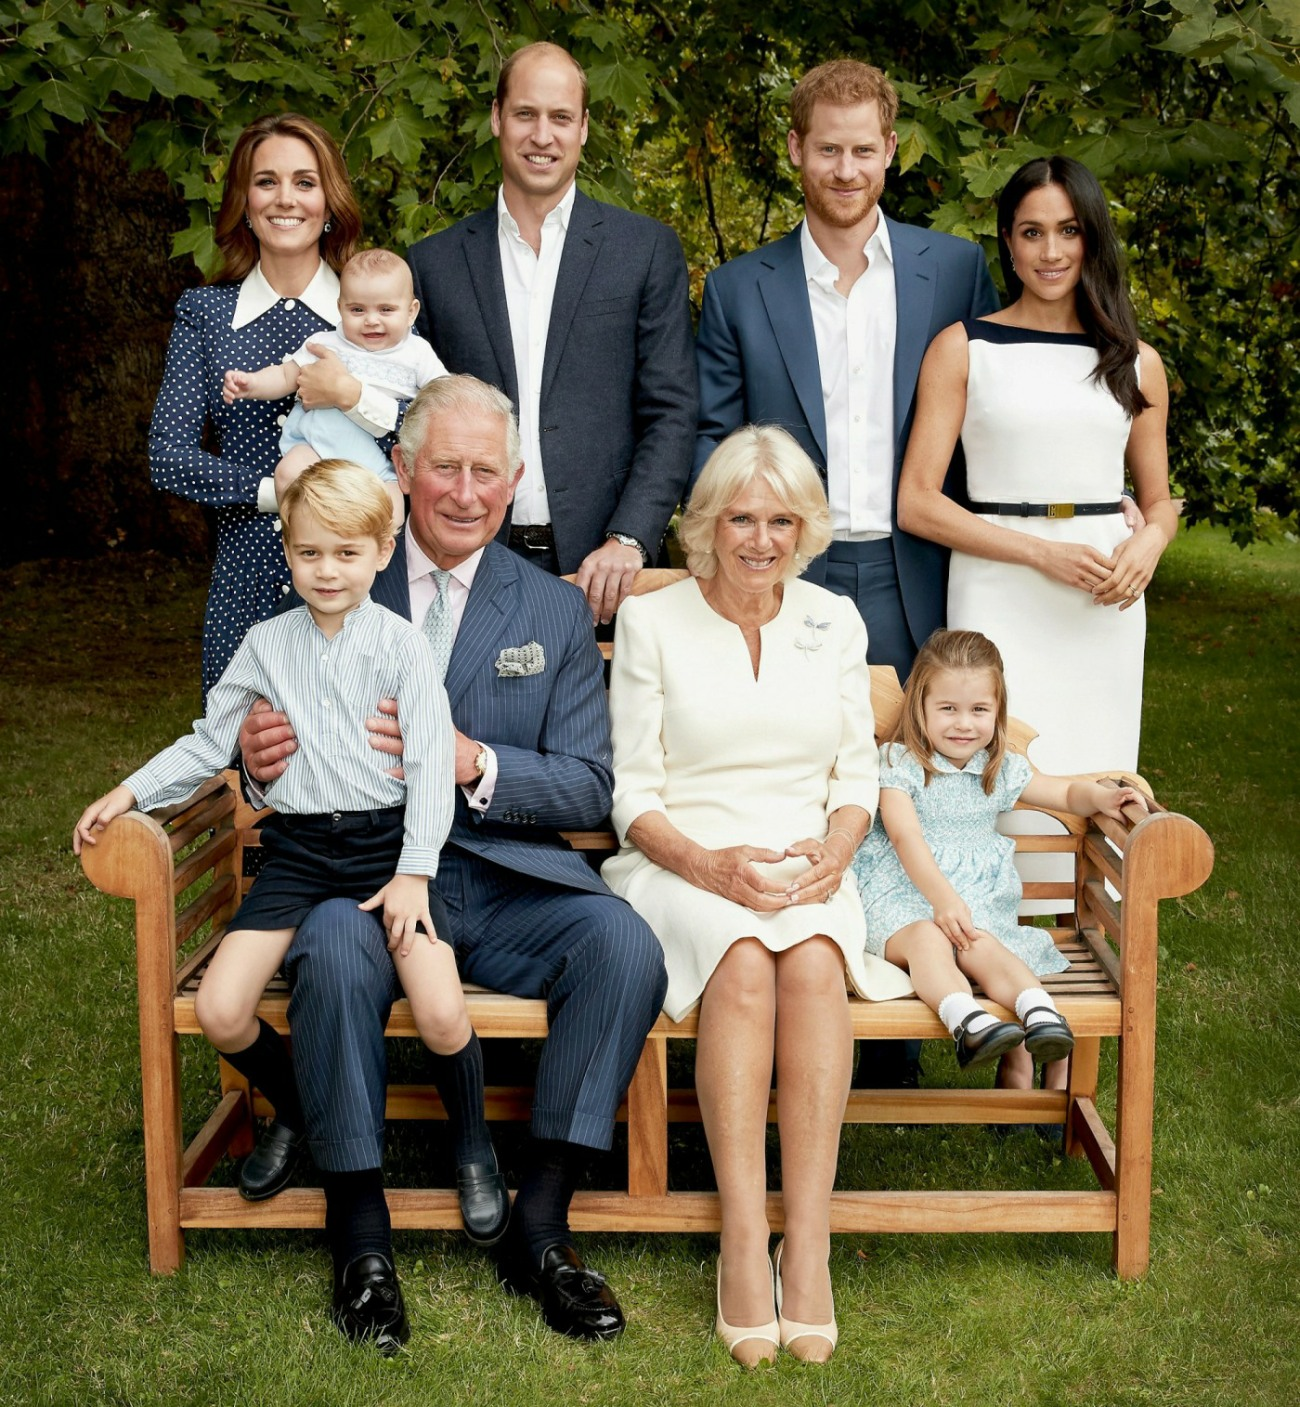 HRH The Prince of Wales Birthday Family Portrait